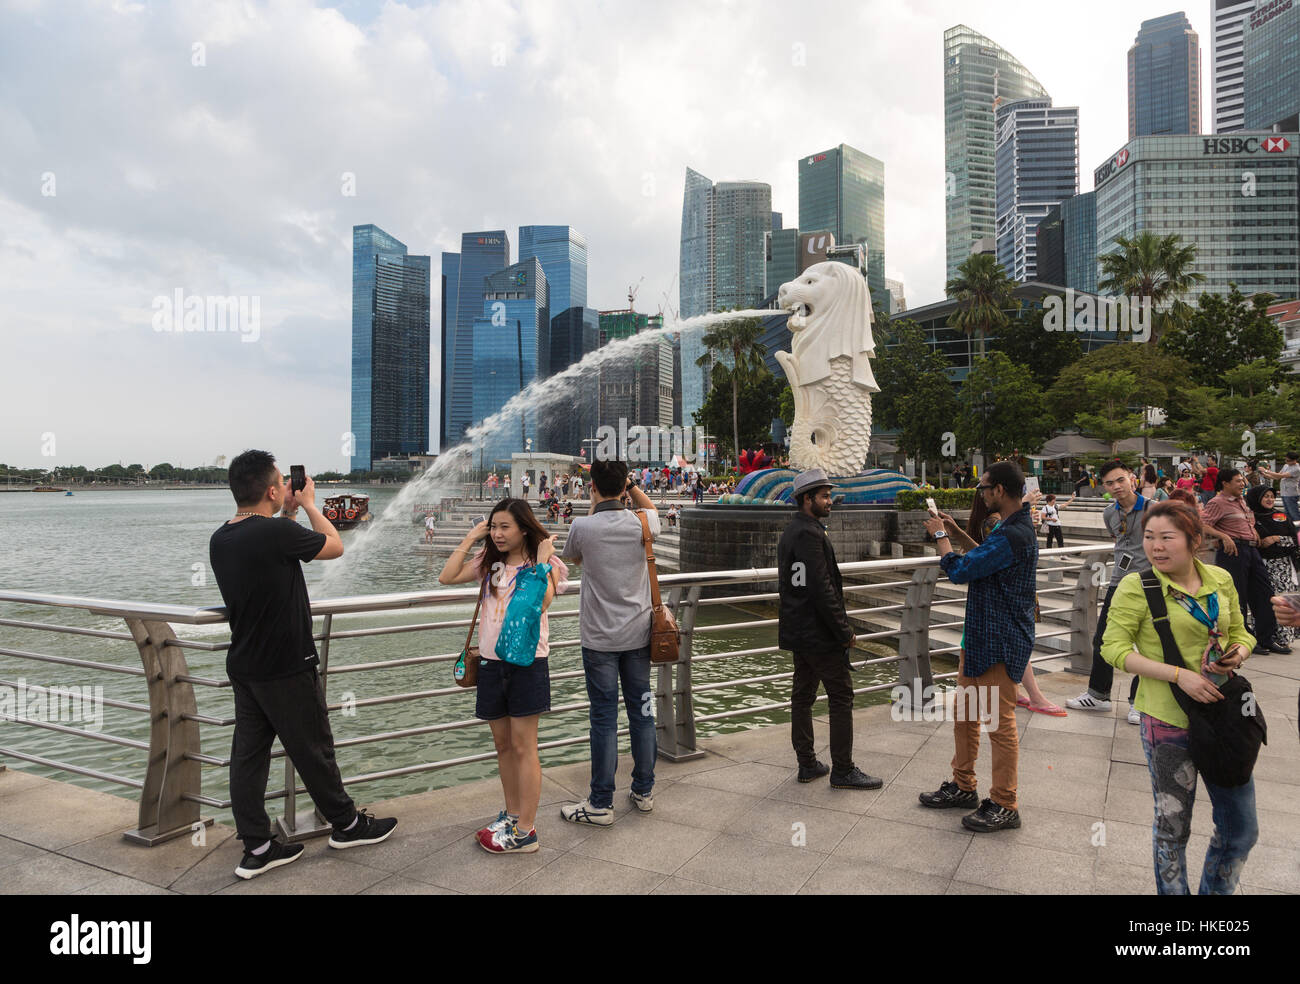 SINGAPORE, SINGAPORE - FEBRUARY 22 2016: Tourists take photos in front of the city famous skyline and the Merlion statue. Stock Photo